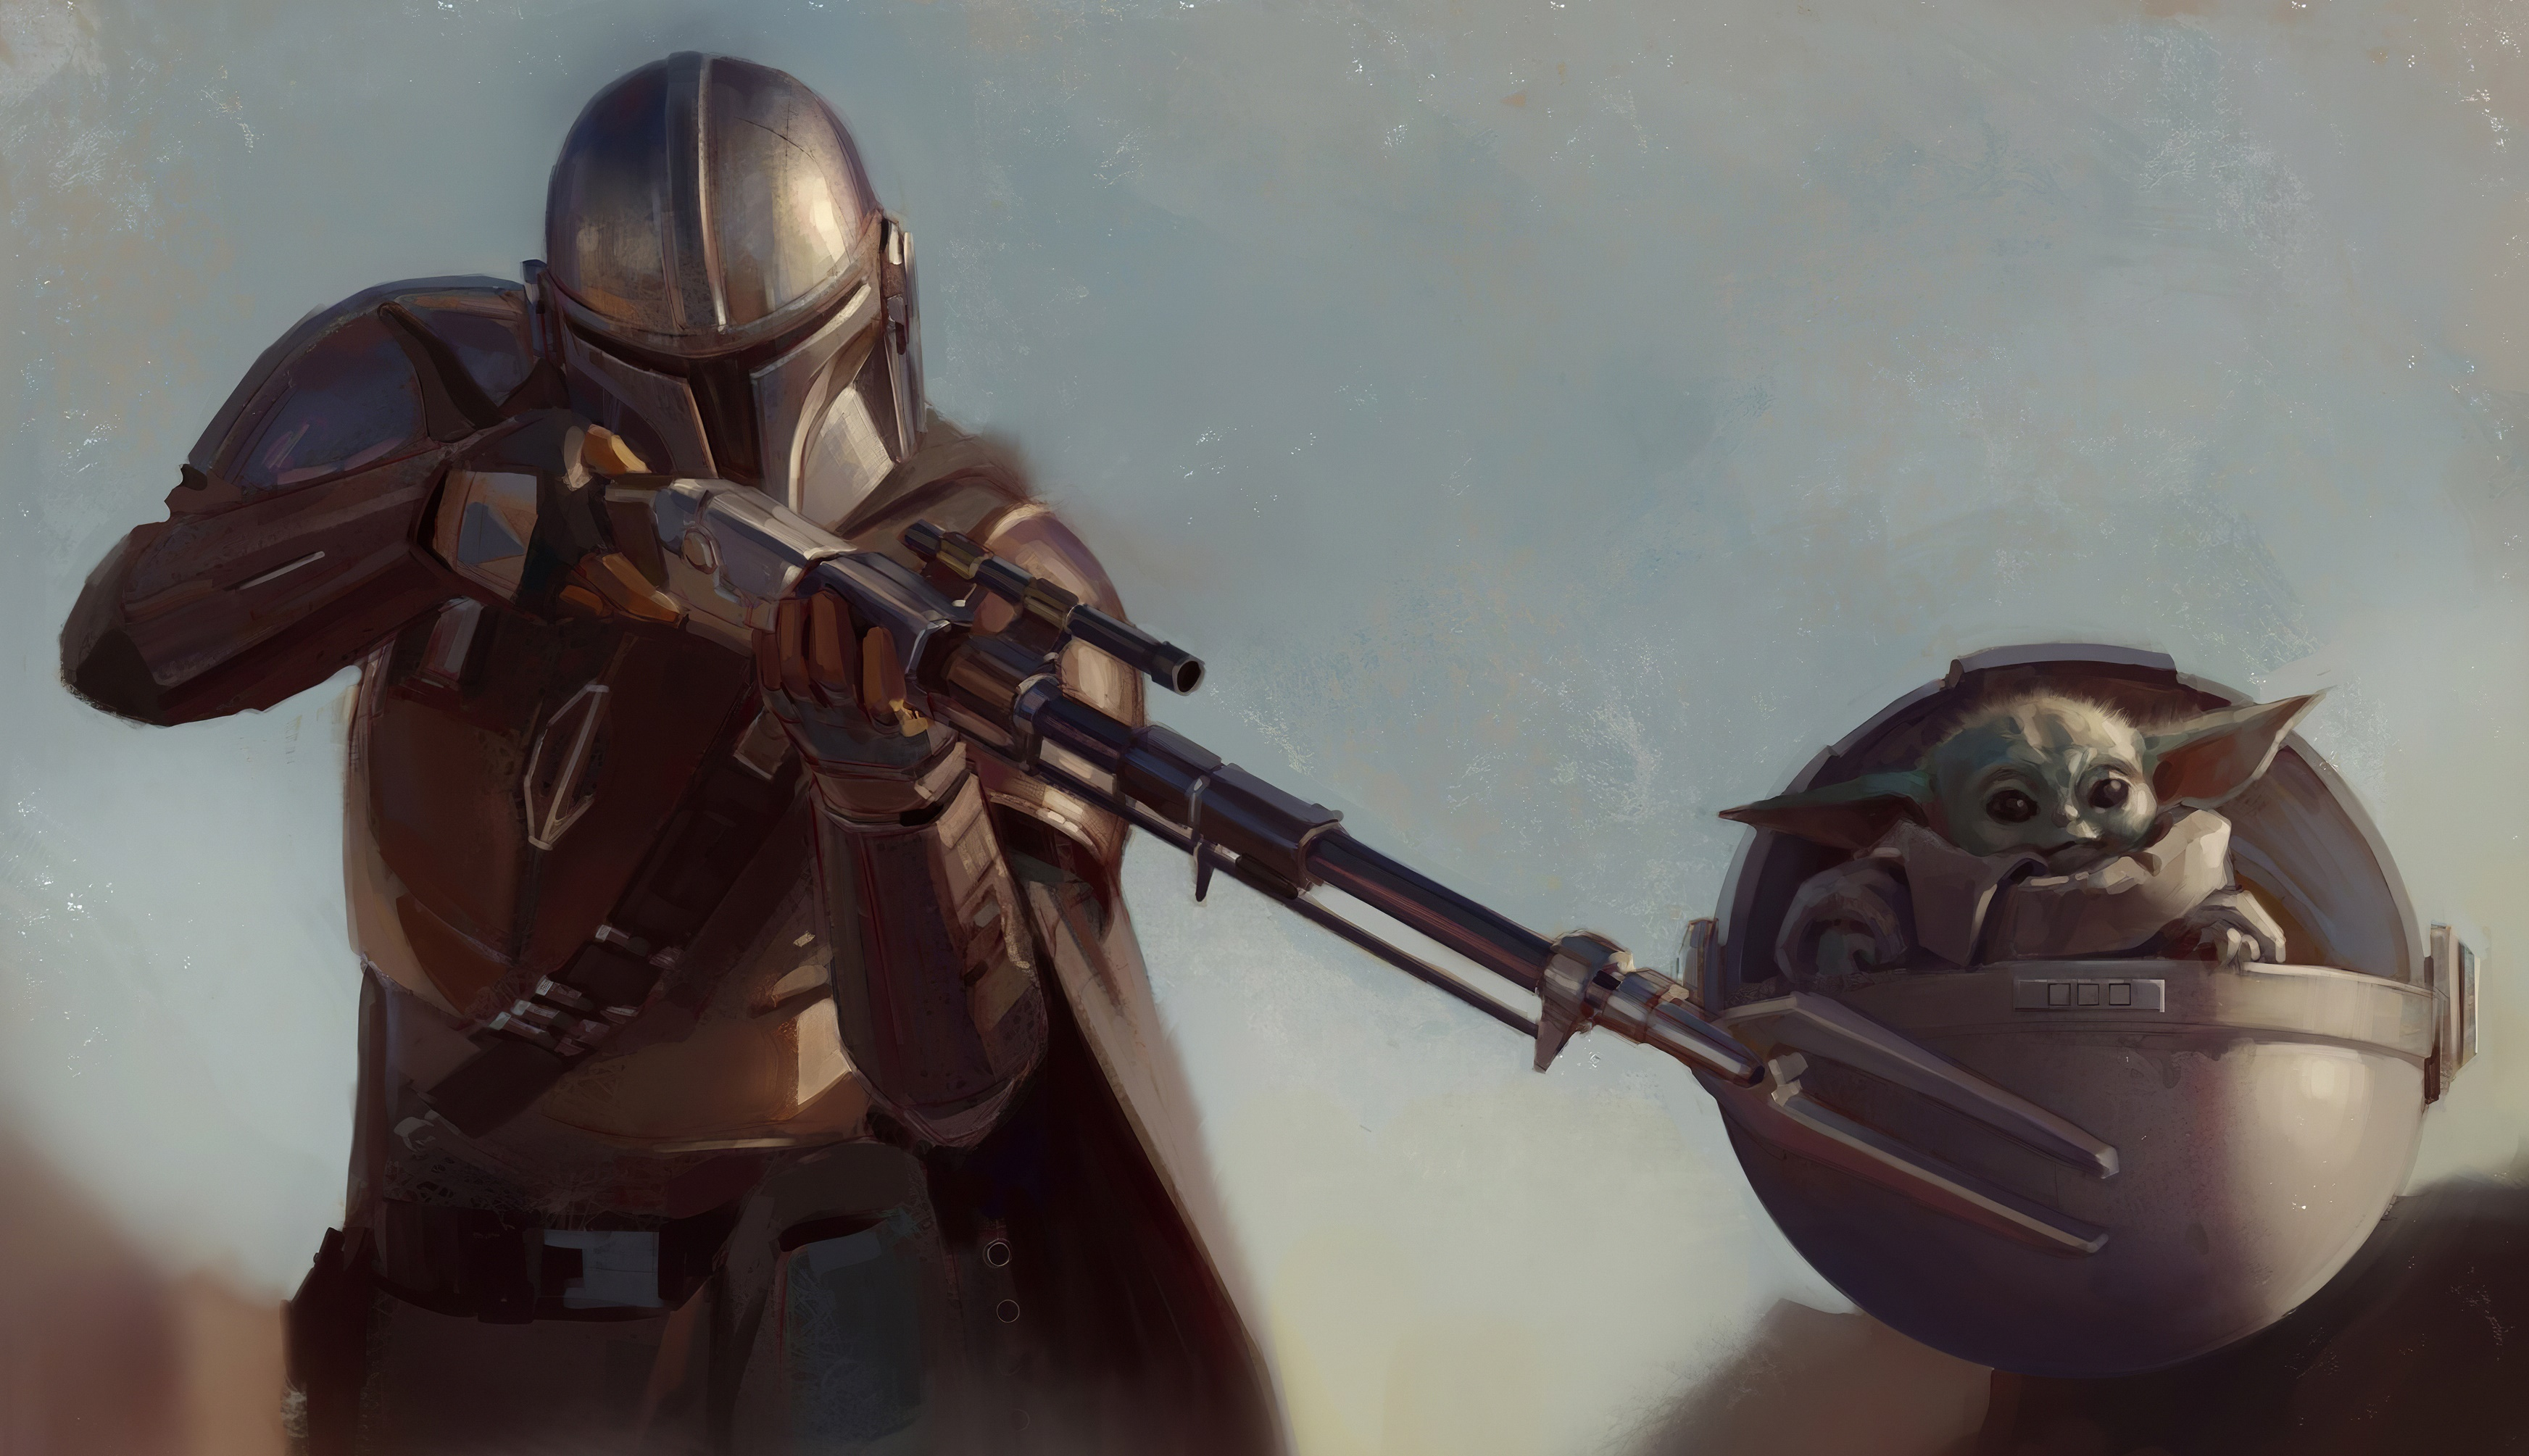 The Mandalorian Season 2 Release Date, Theories Baby Yoda will Time Travel to become Master Yoda